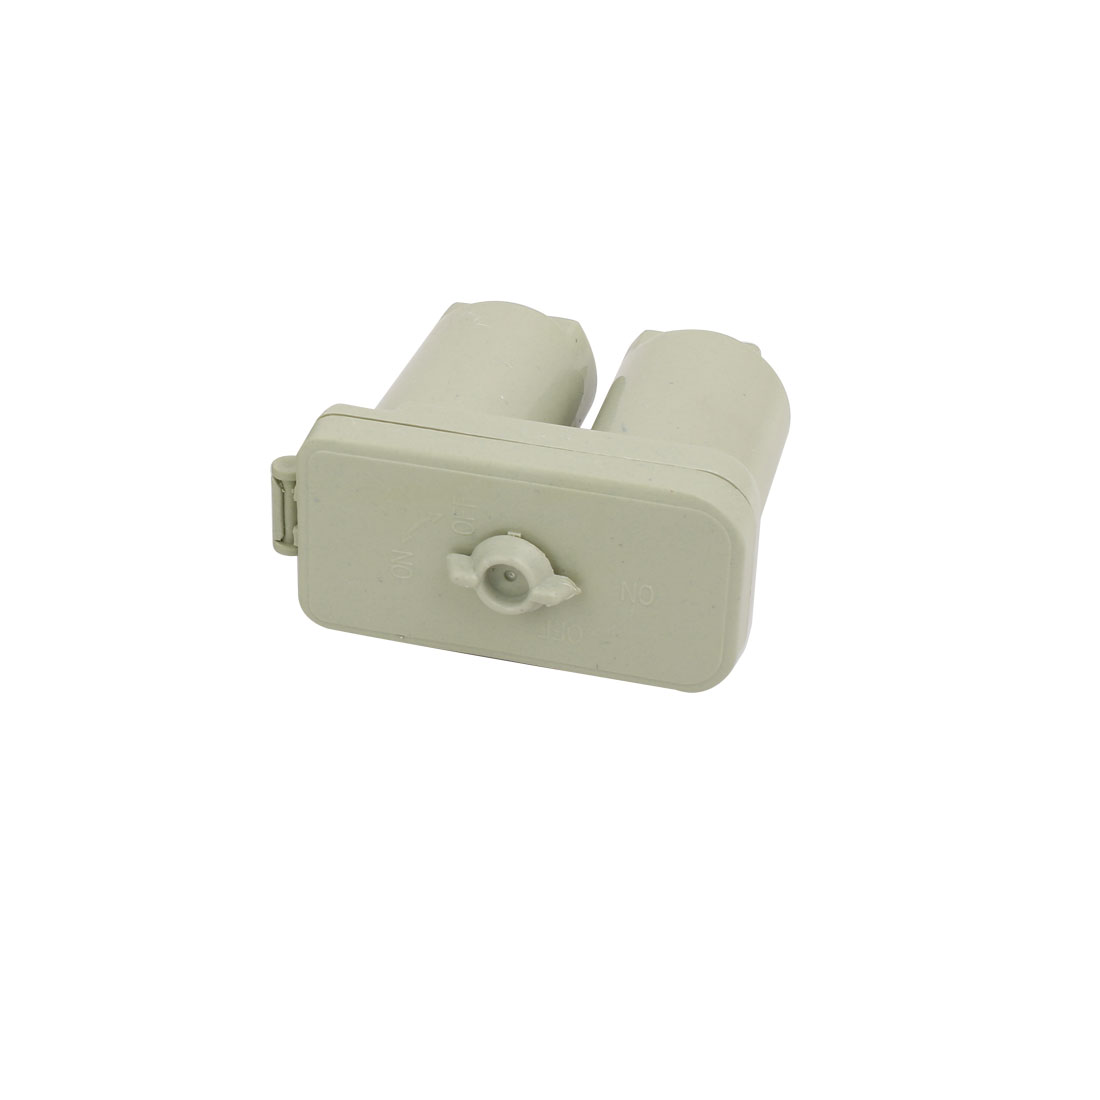 Gray Plastic Dual Capacitor Protector Junction Box 90mm x 42mm x 75mm